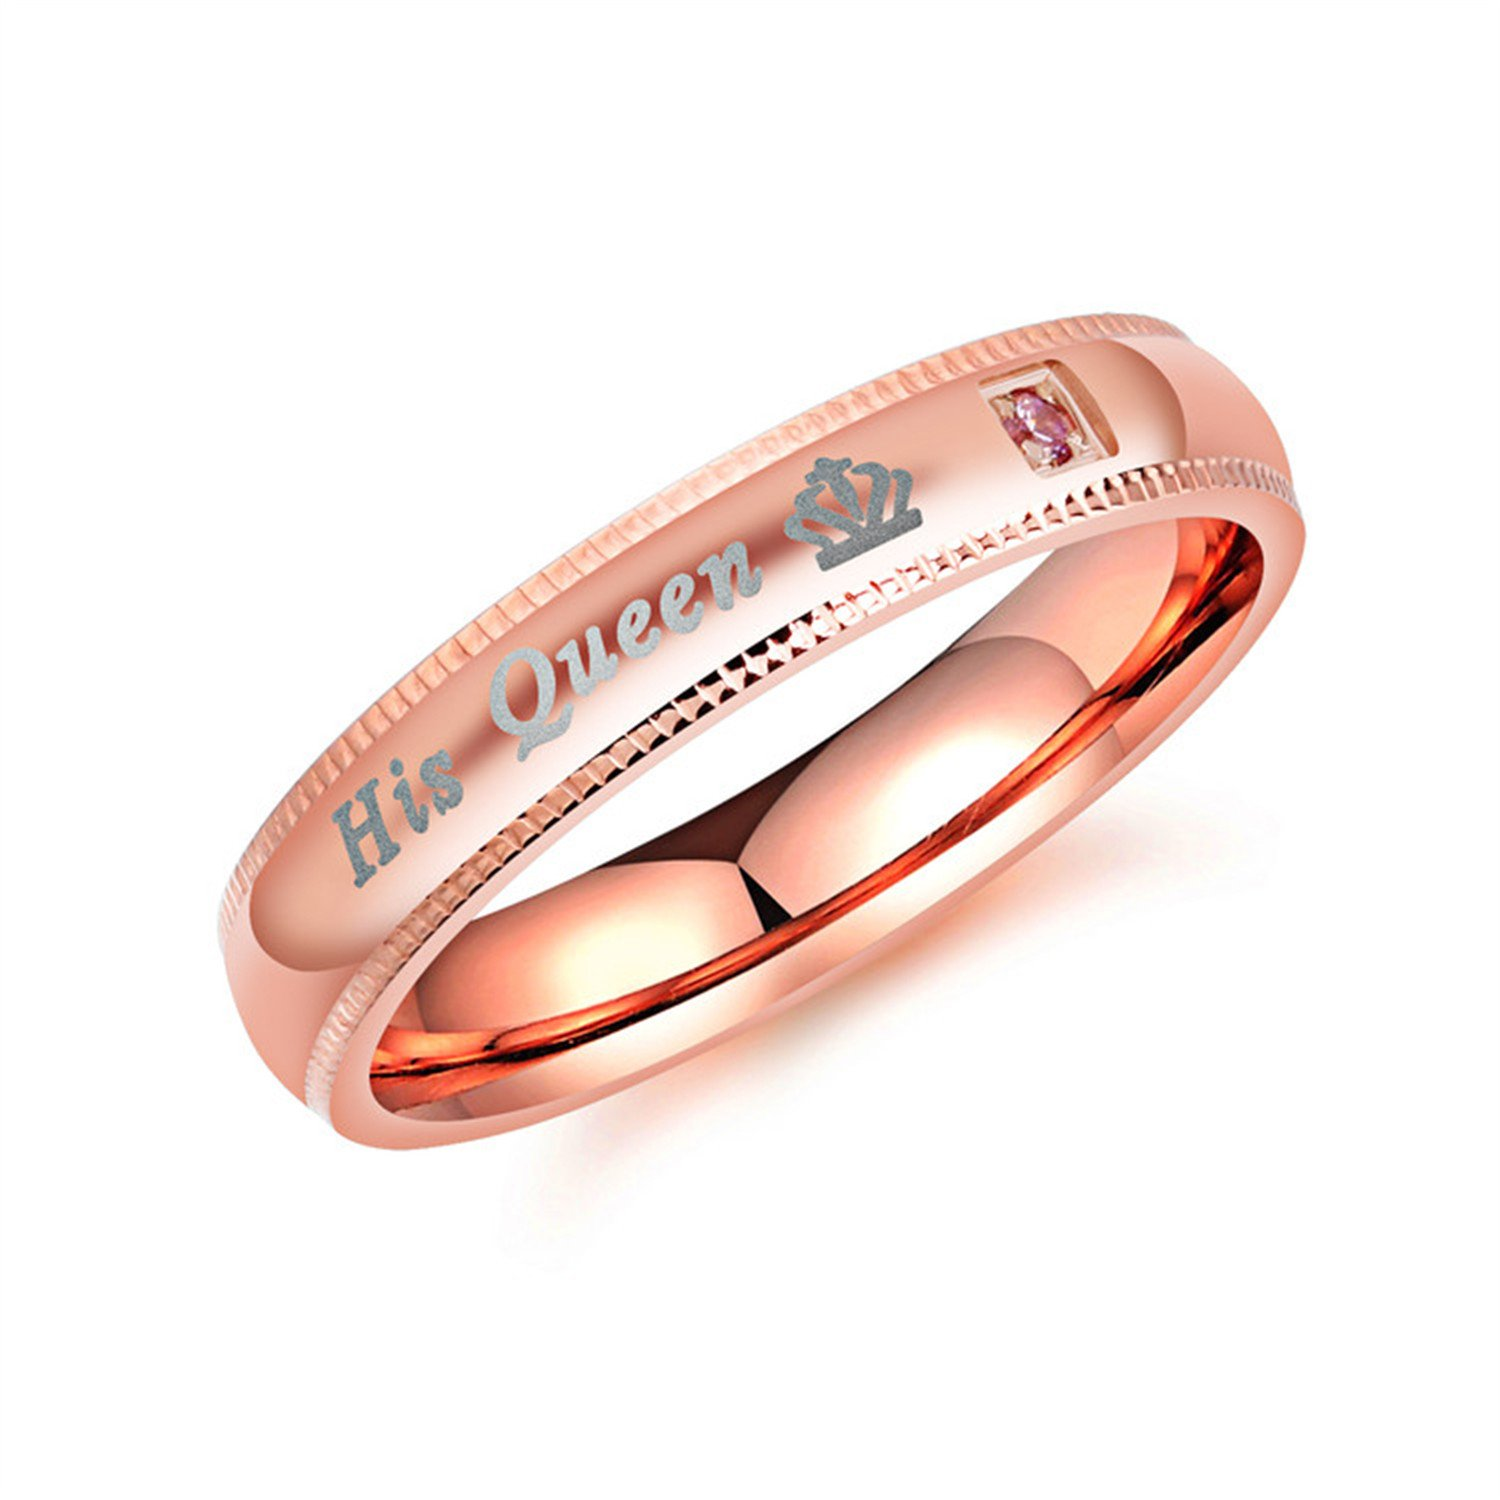 Couple Jewelry Her King and His Queen Rings for Women Men Gifts marwar